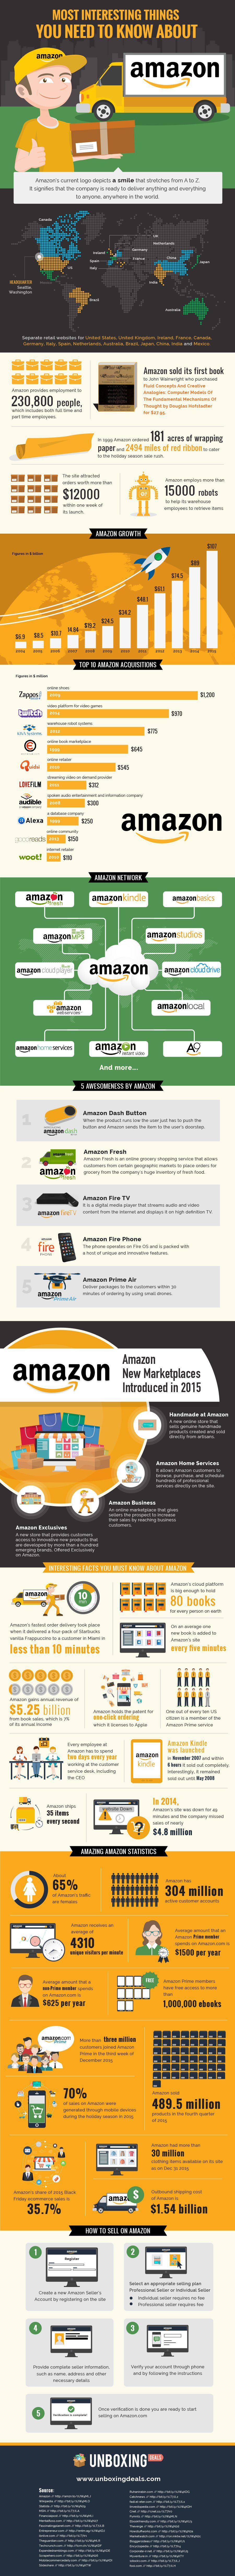 Things You Need To Know About Amazon